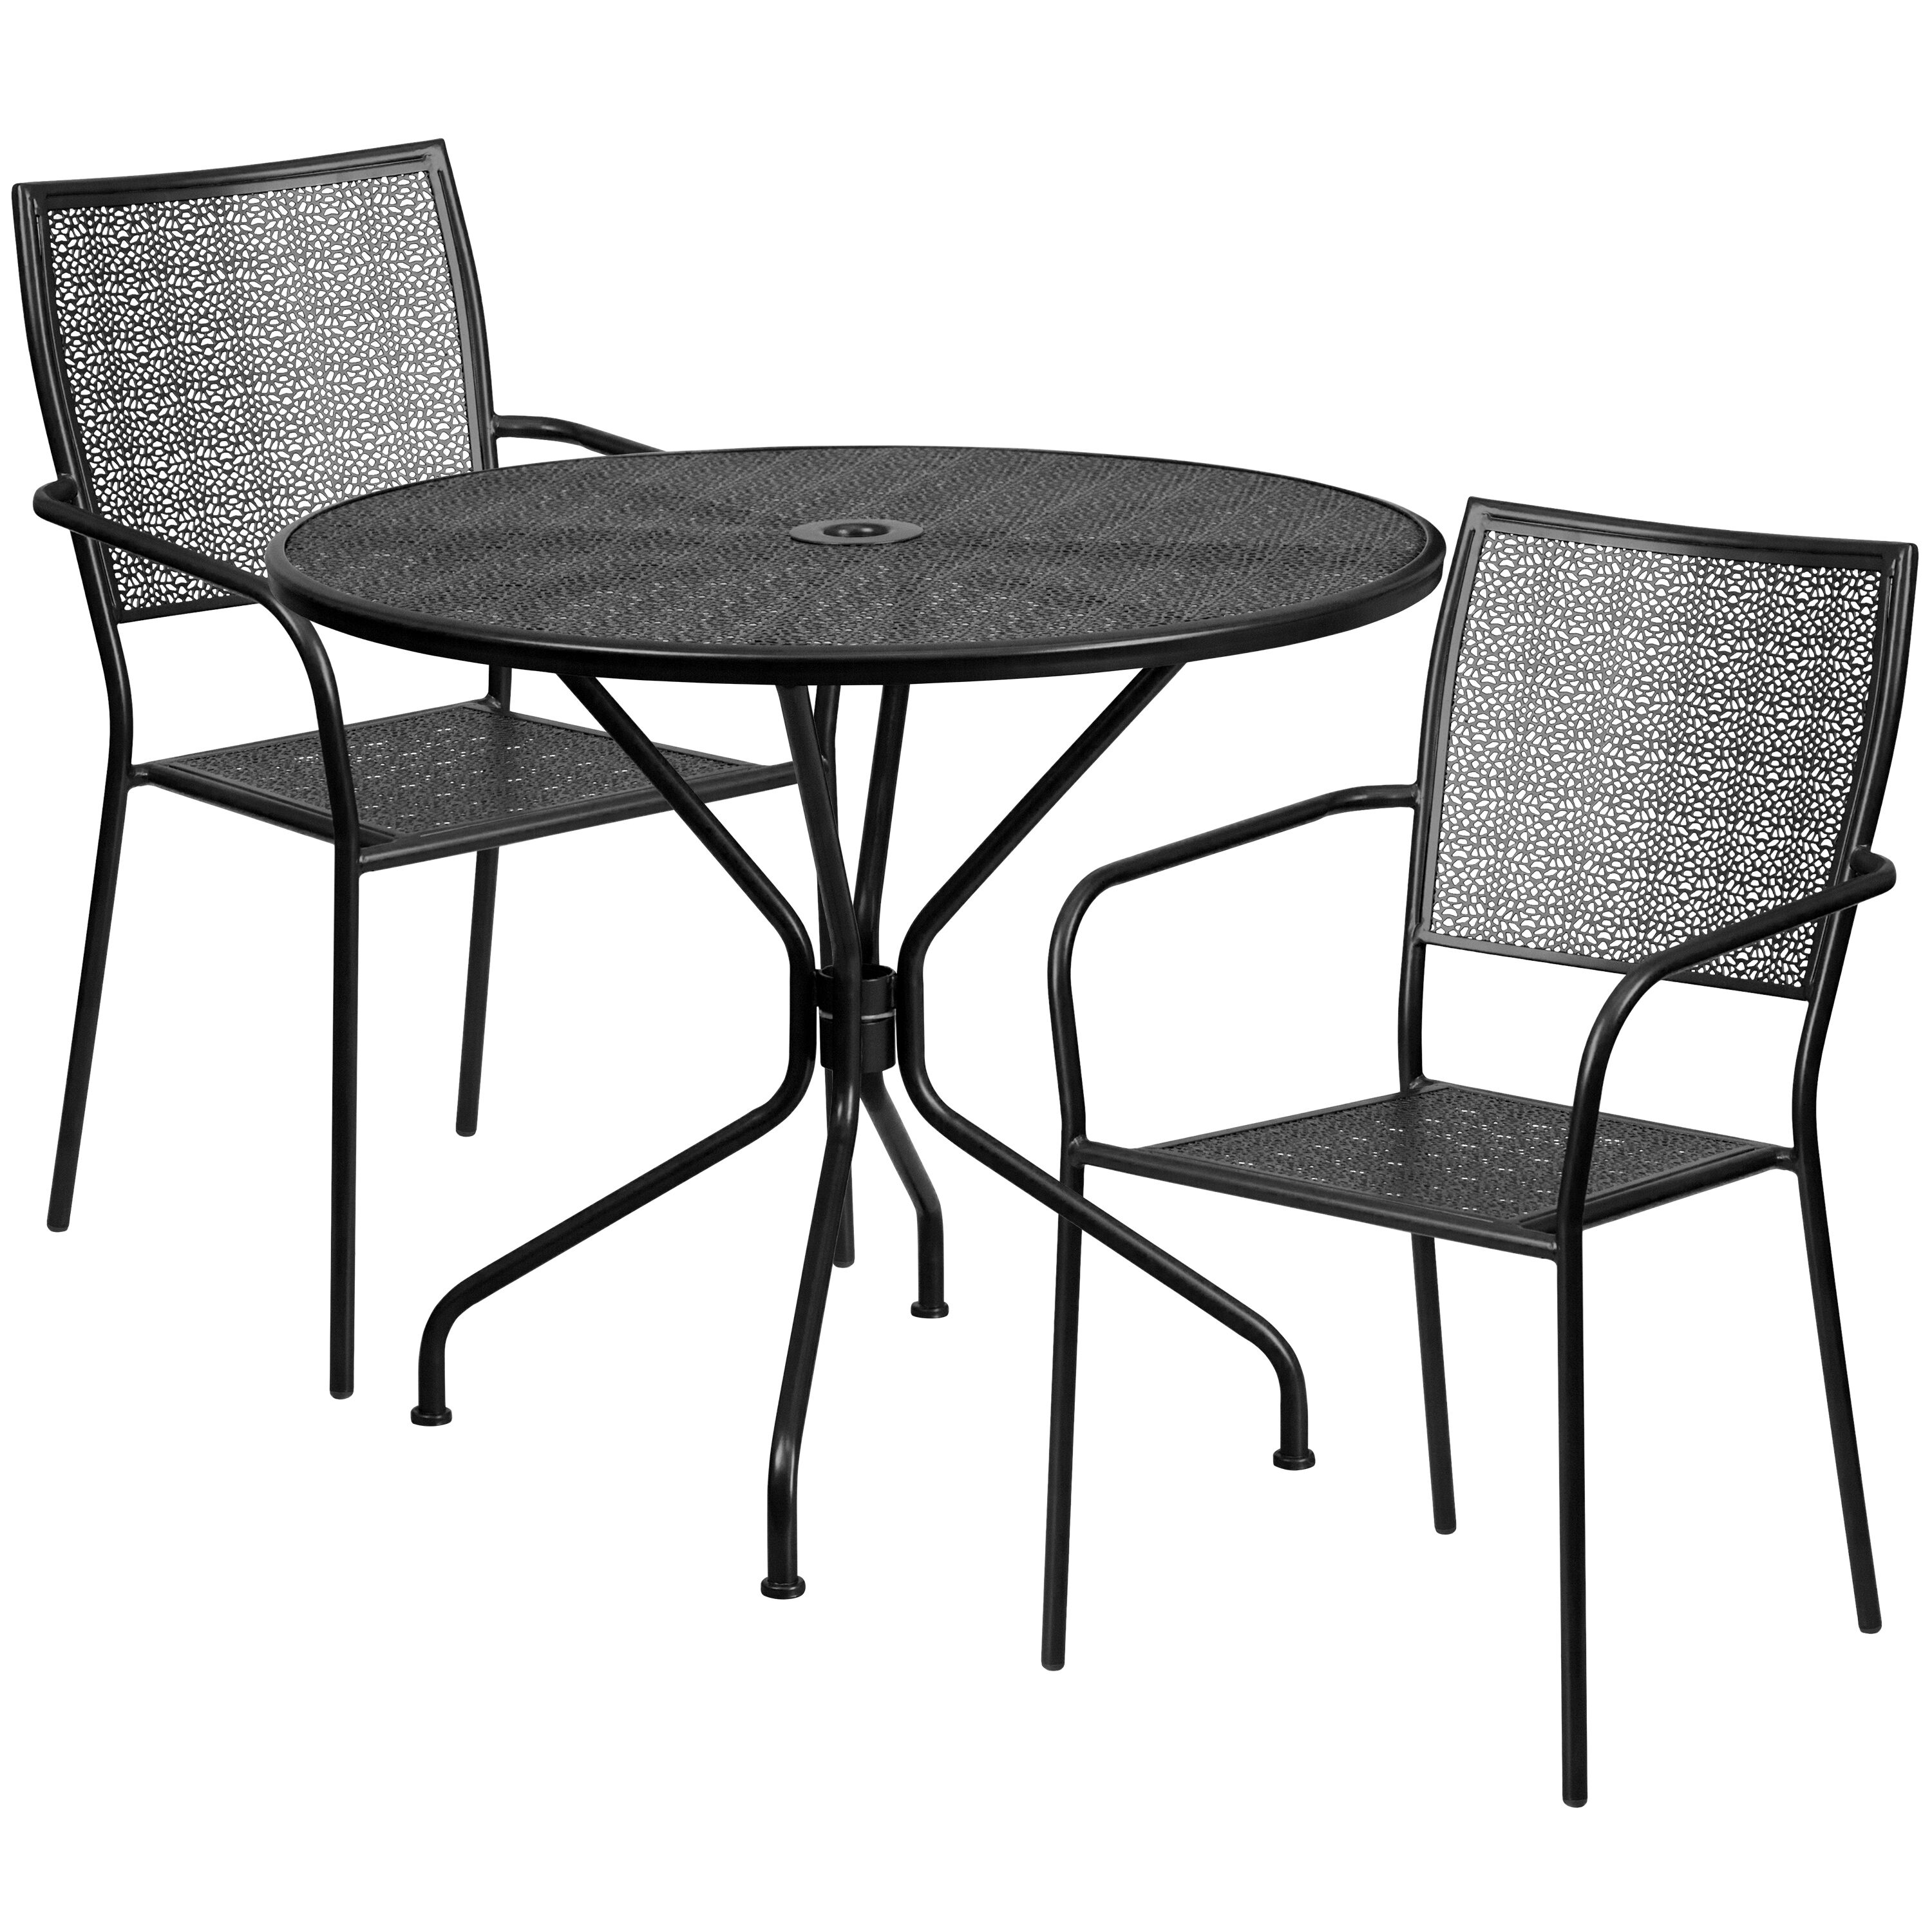 35 25rd black patio table set co 35rd 02chr2 bk gg rh stackchairs4less com black patio table cover black patio table and chairs sets